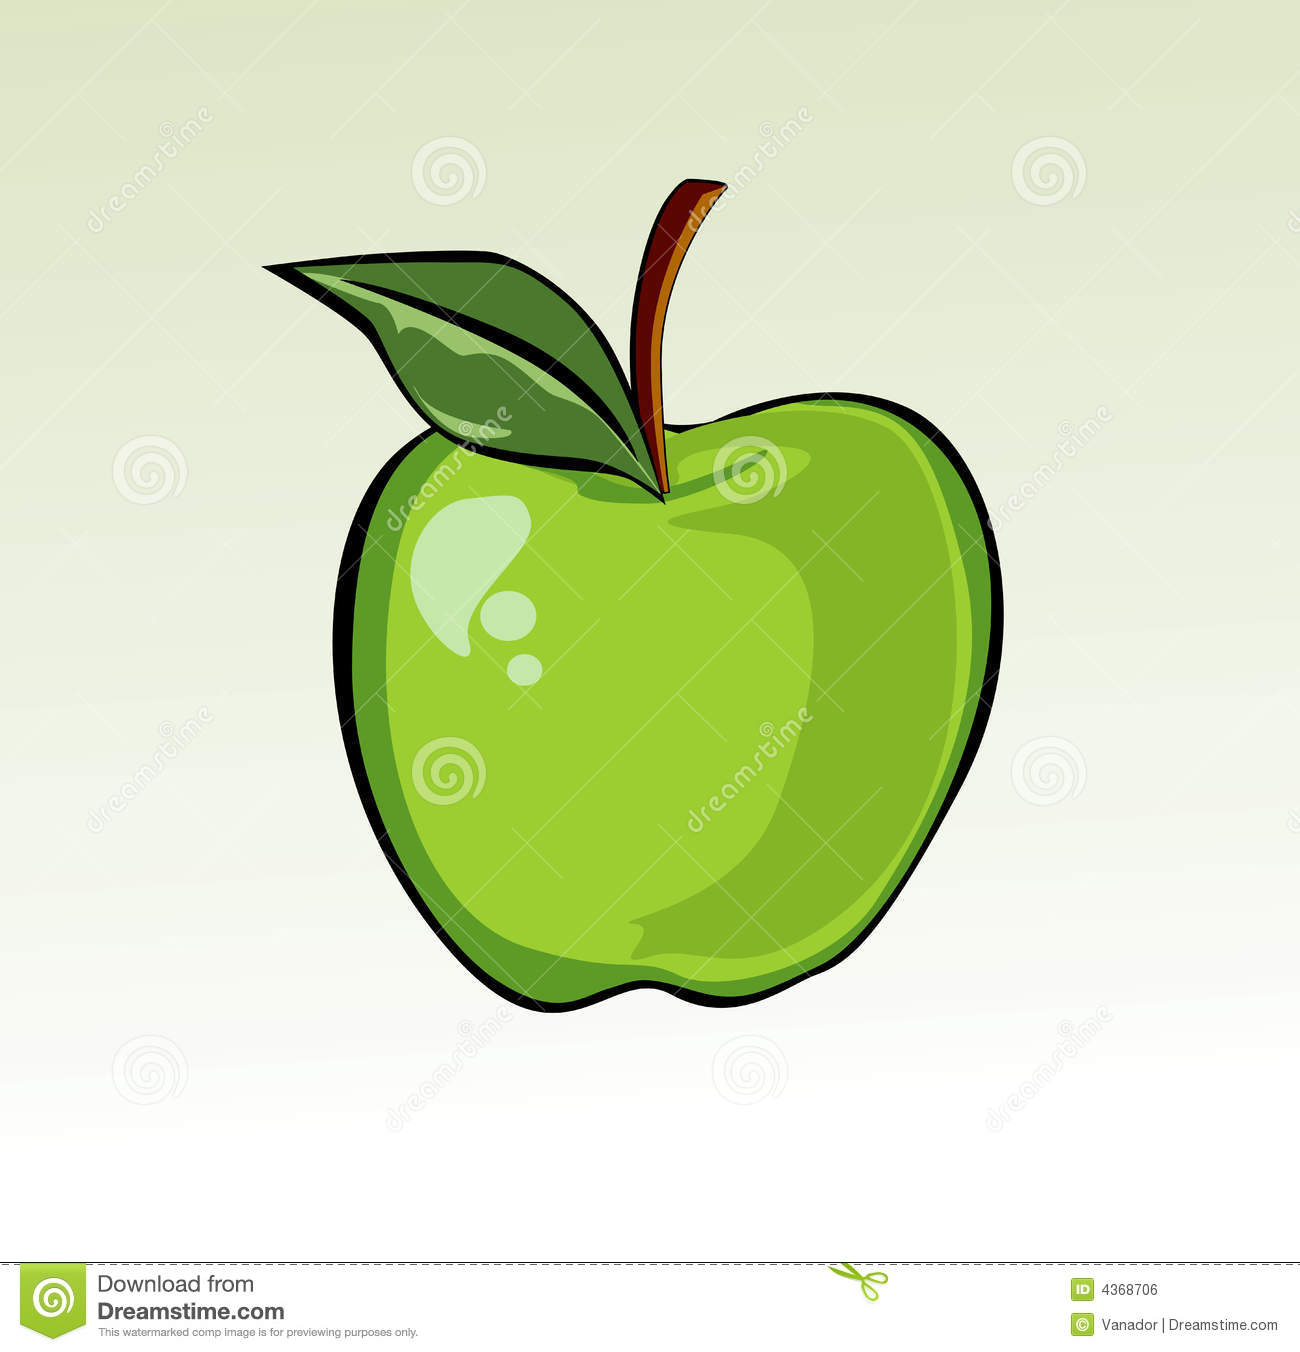 delicious green apple illustration - photo #24